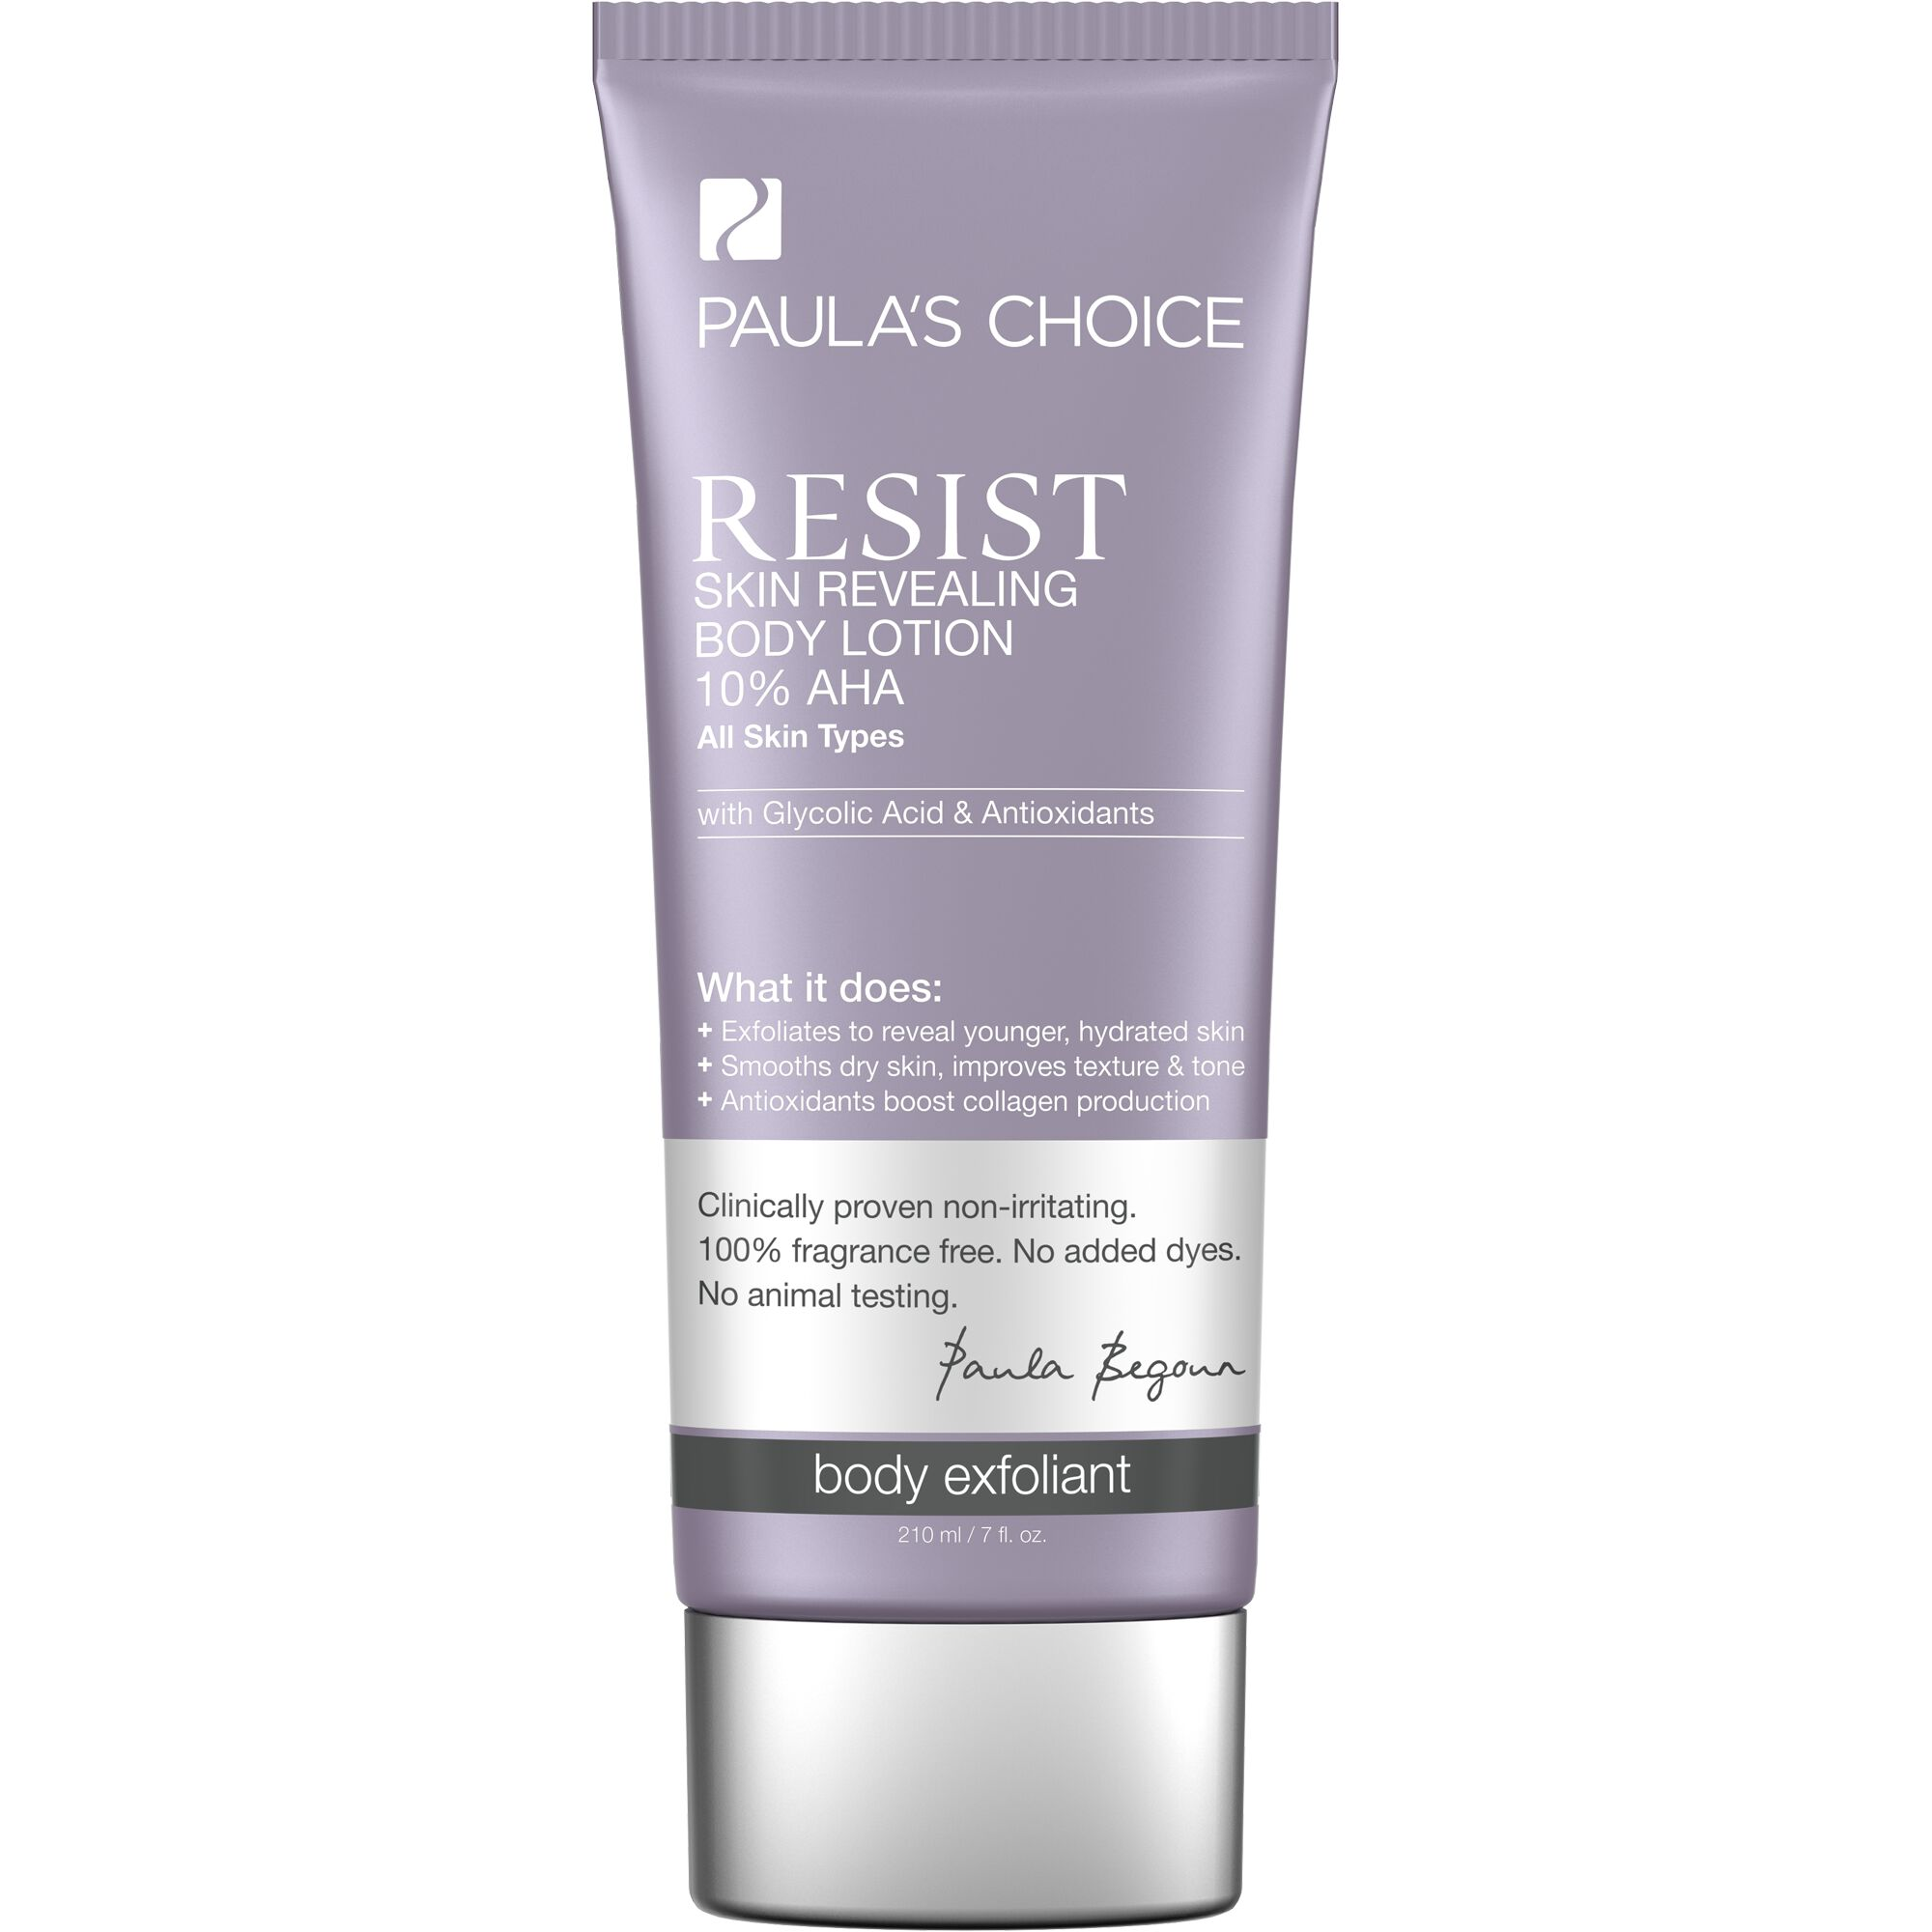 RESIST Skin Revealing 10% AHA Body Lotion | Paula's Choice | 2000 x 2000 jpeg 135kB